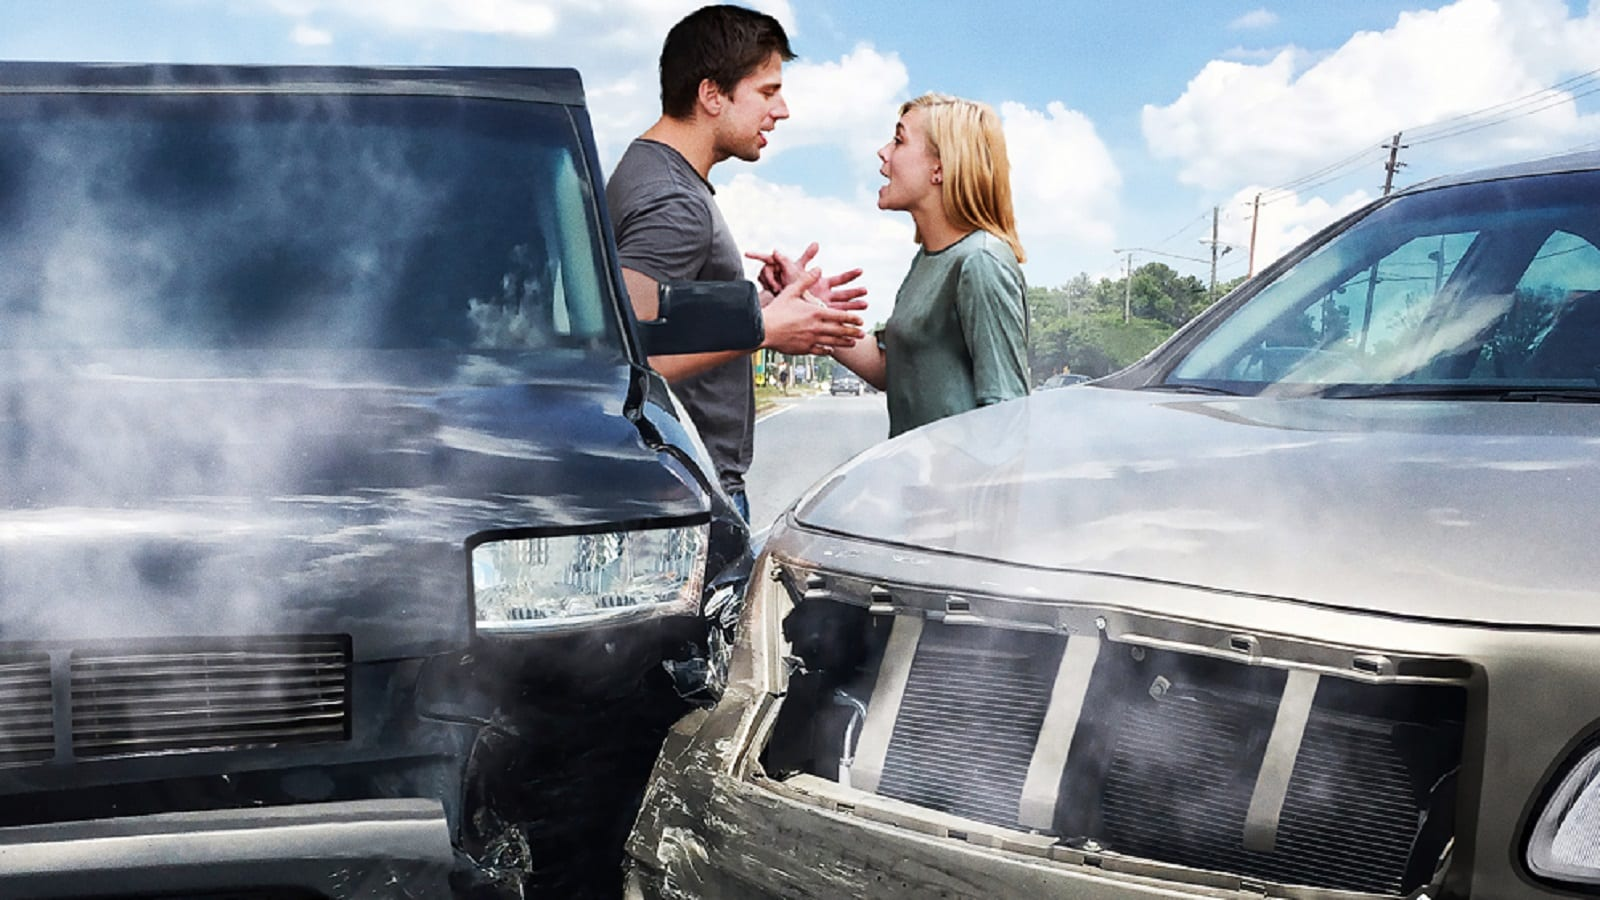 Two Drivers Arguing After An Auto Accident